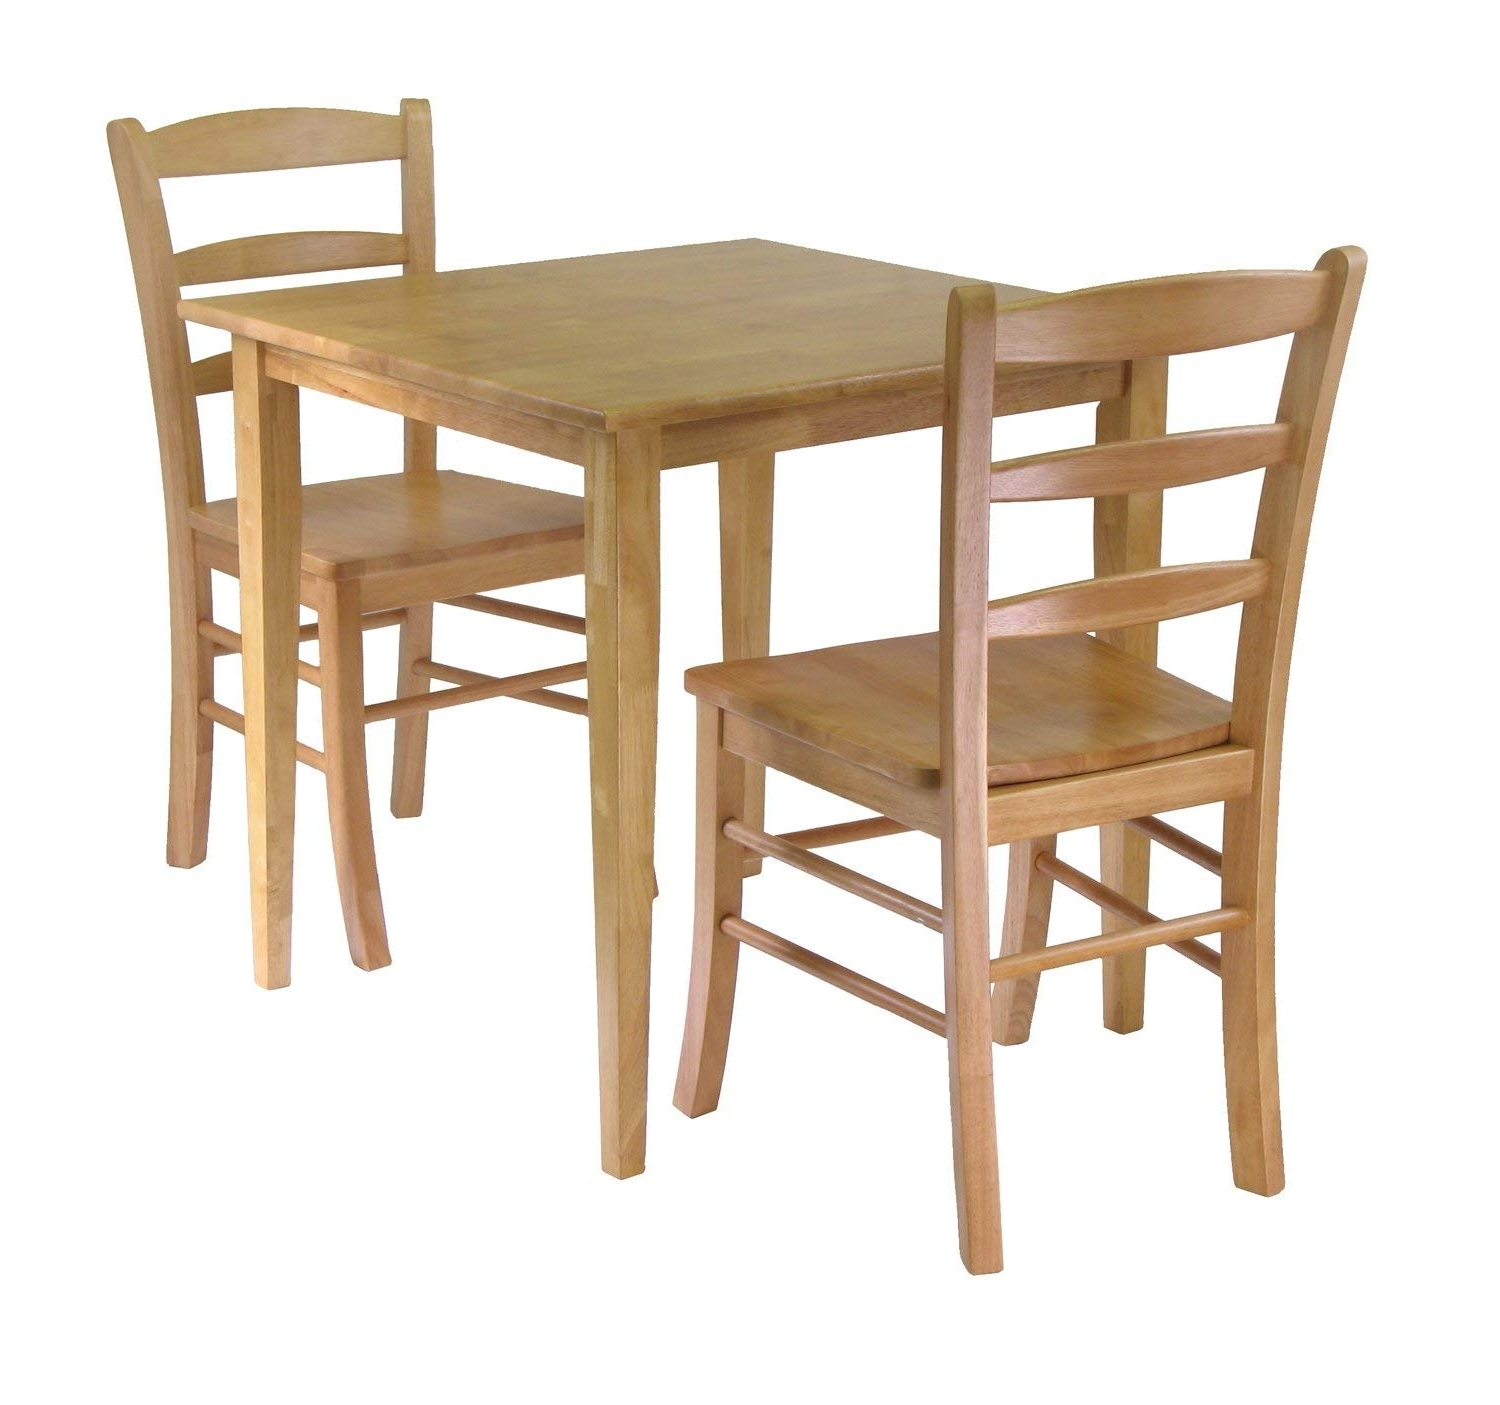 2018 Amazon – Winsome Groveland 3 Piece Wood Dining Set, Light Oak Throughout Small Extendable Dining Table Sets (View 1 of 25)